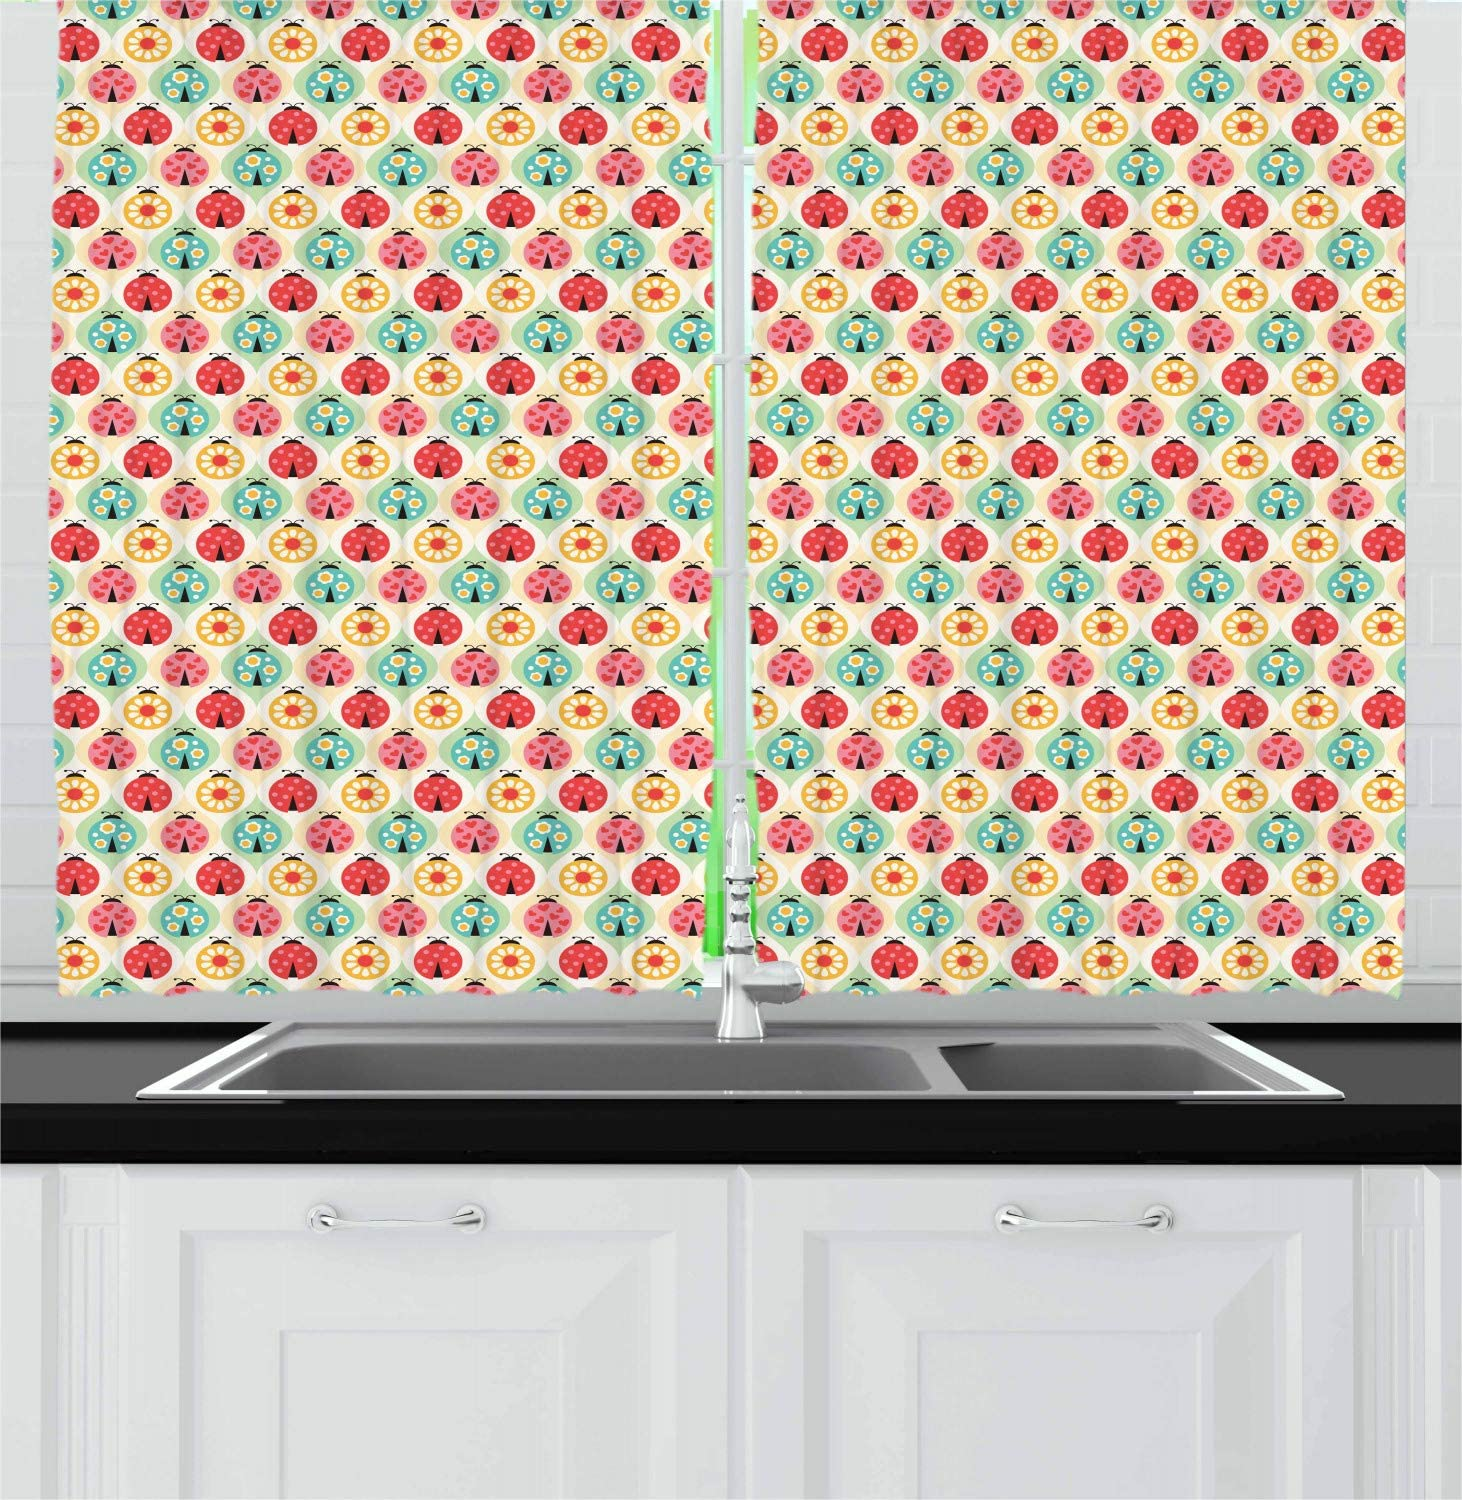 Ambesonne Ladybug Kitchen Curtains Cartoon Ladybug Insect Pattern Ornamented With Floral Petal Motifs Hearts And Dots Window Drapes 2 Panel Set For Kitchen Cafe Decor 55 X 39 Multicolor Home